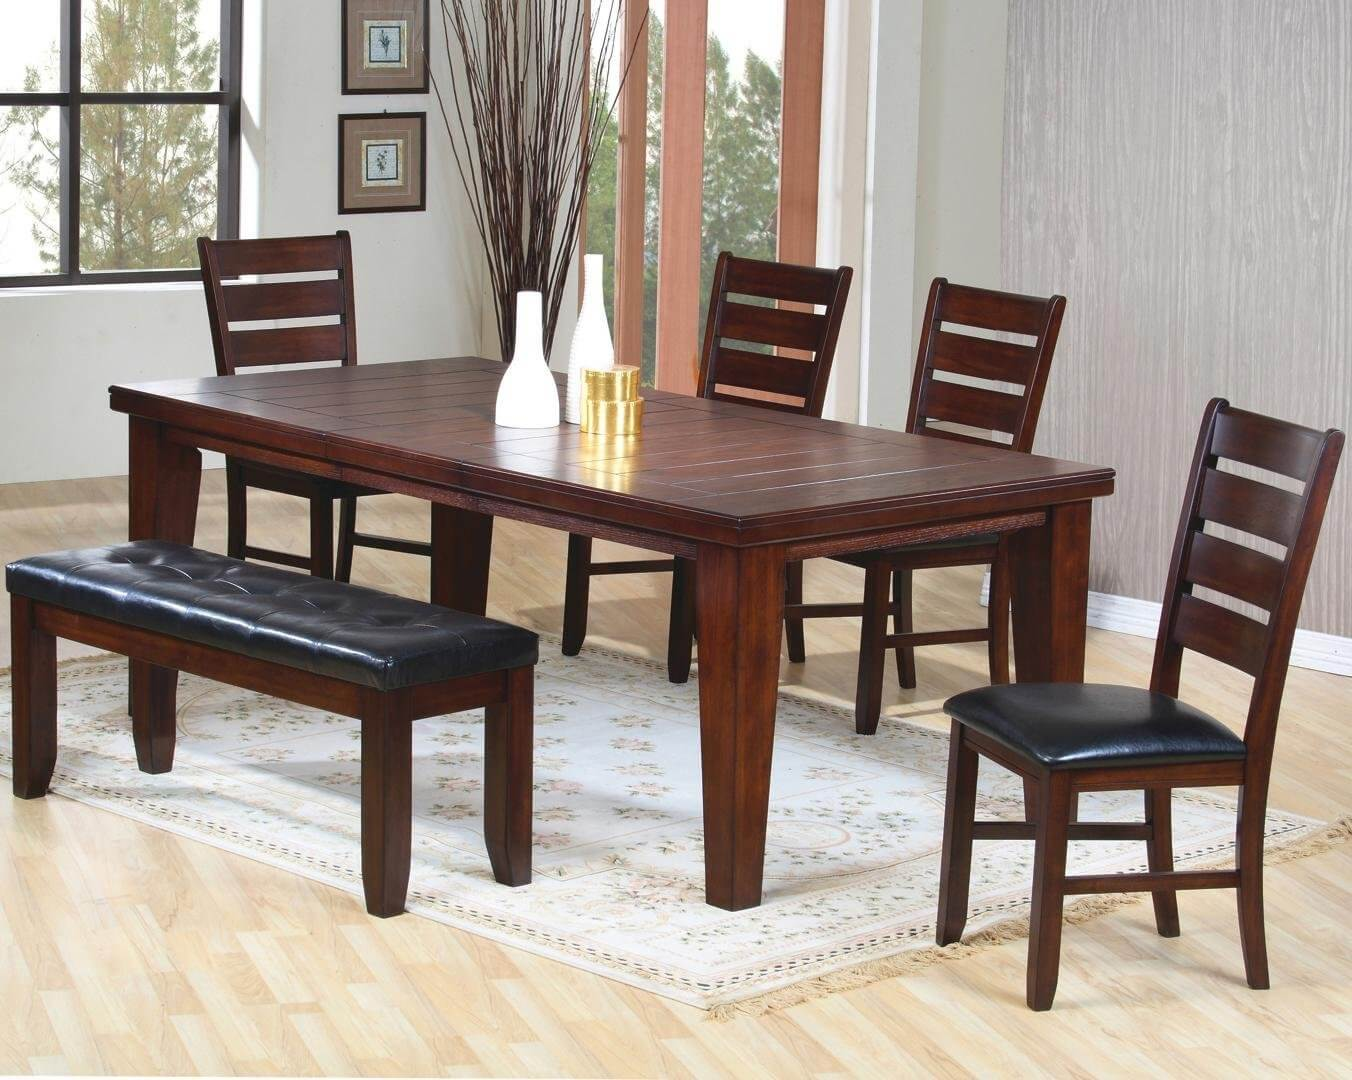 Dining Table Chairs Set Cheap 26 dining room sets (big and small) with bench seating (2018)